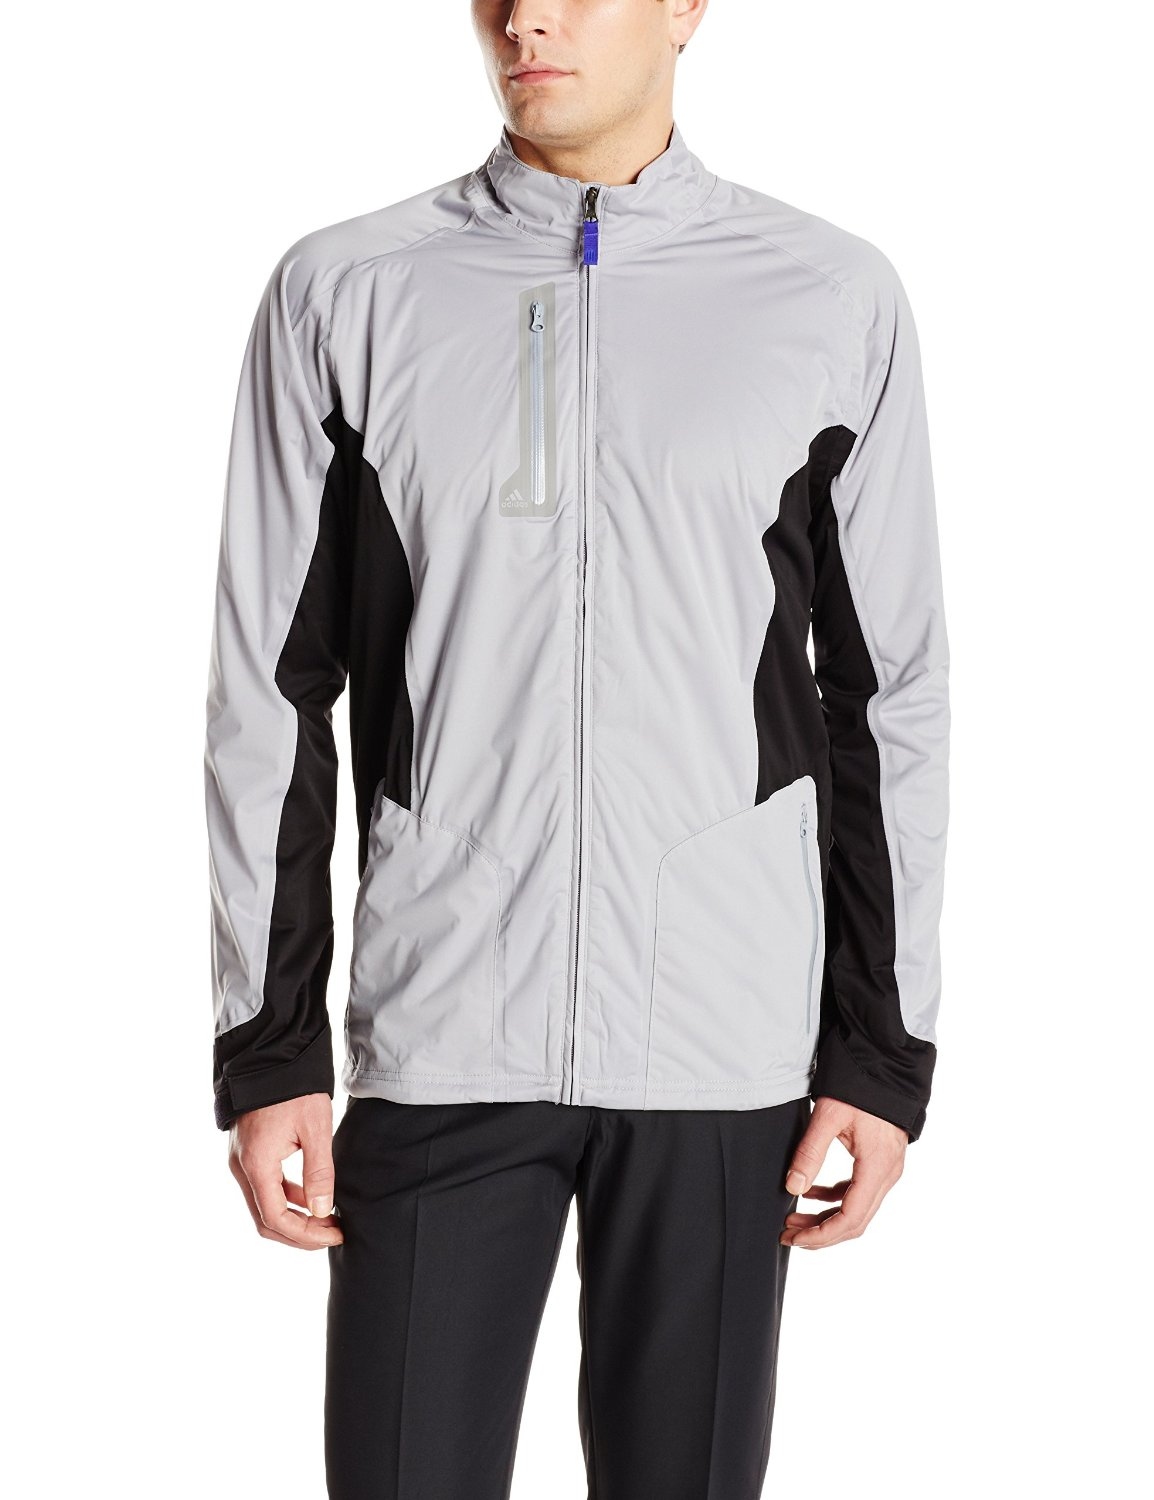 Adidas mens climaproof advance golf rain jackets for Adidas golf rain shirt